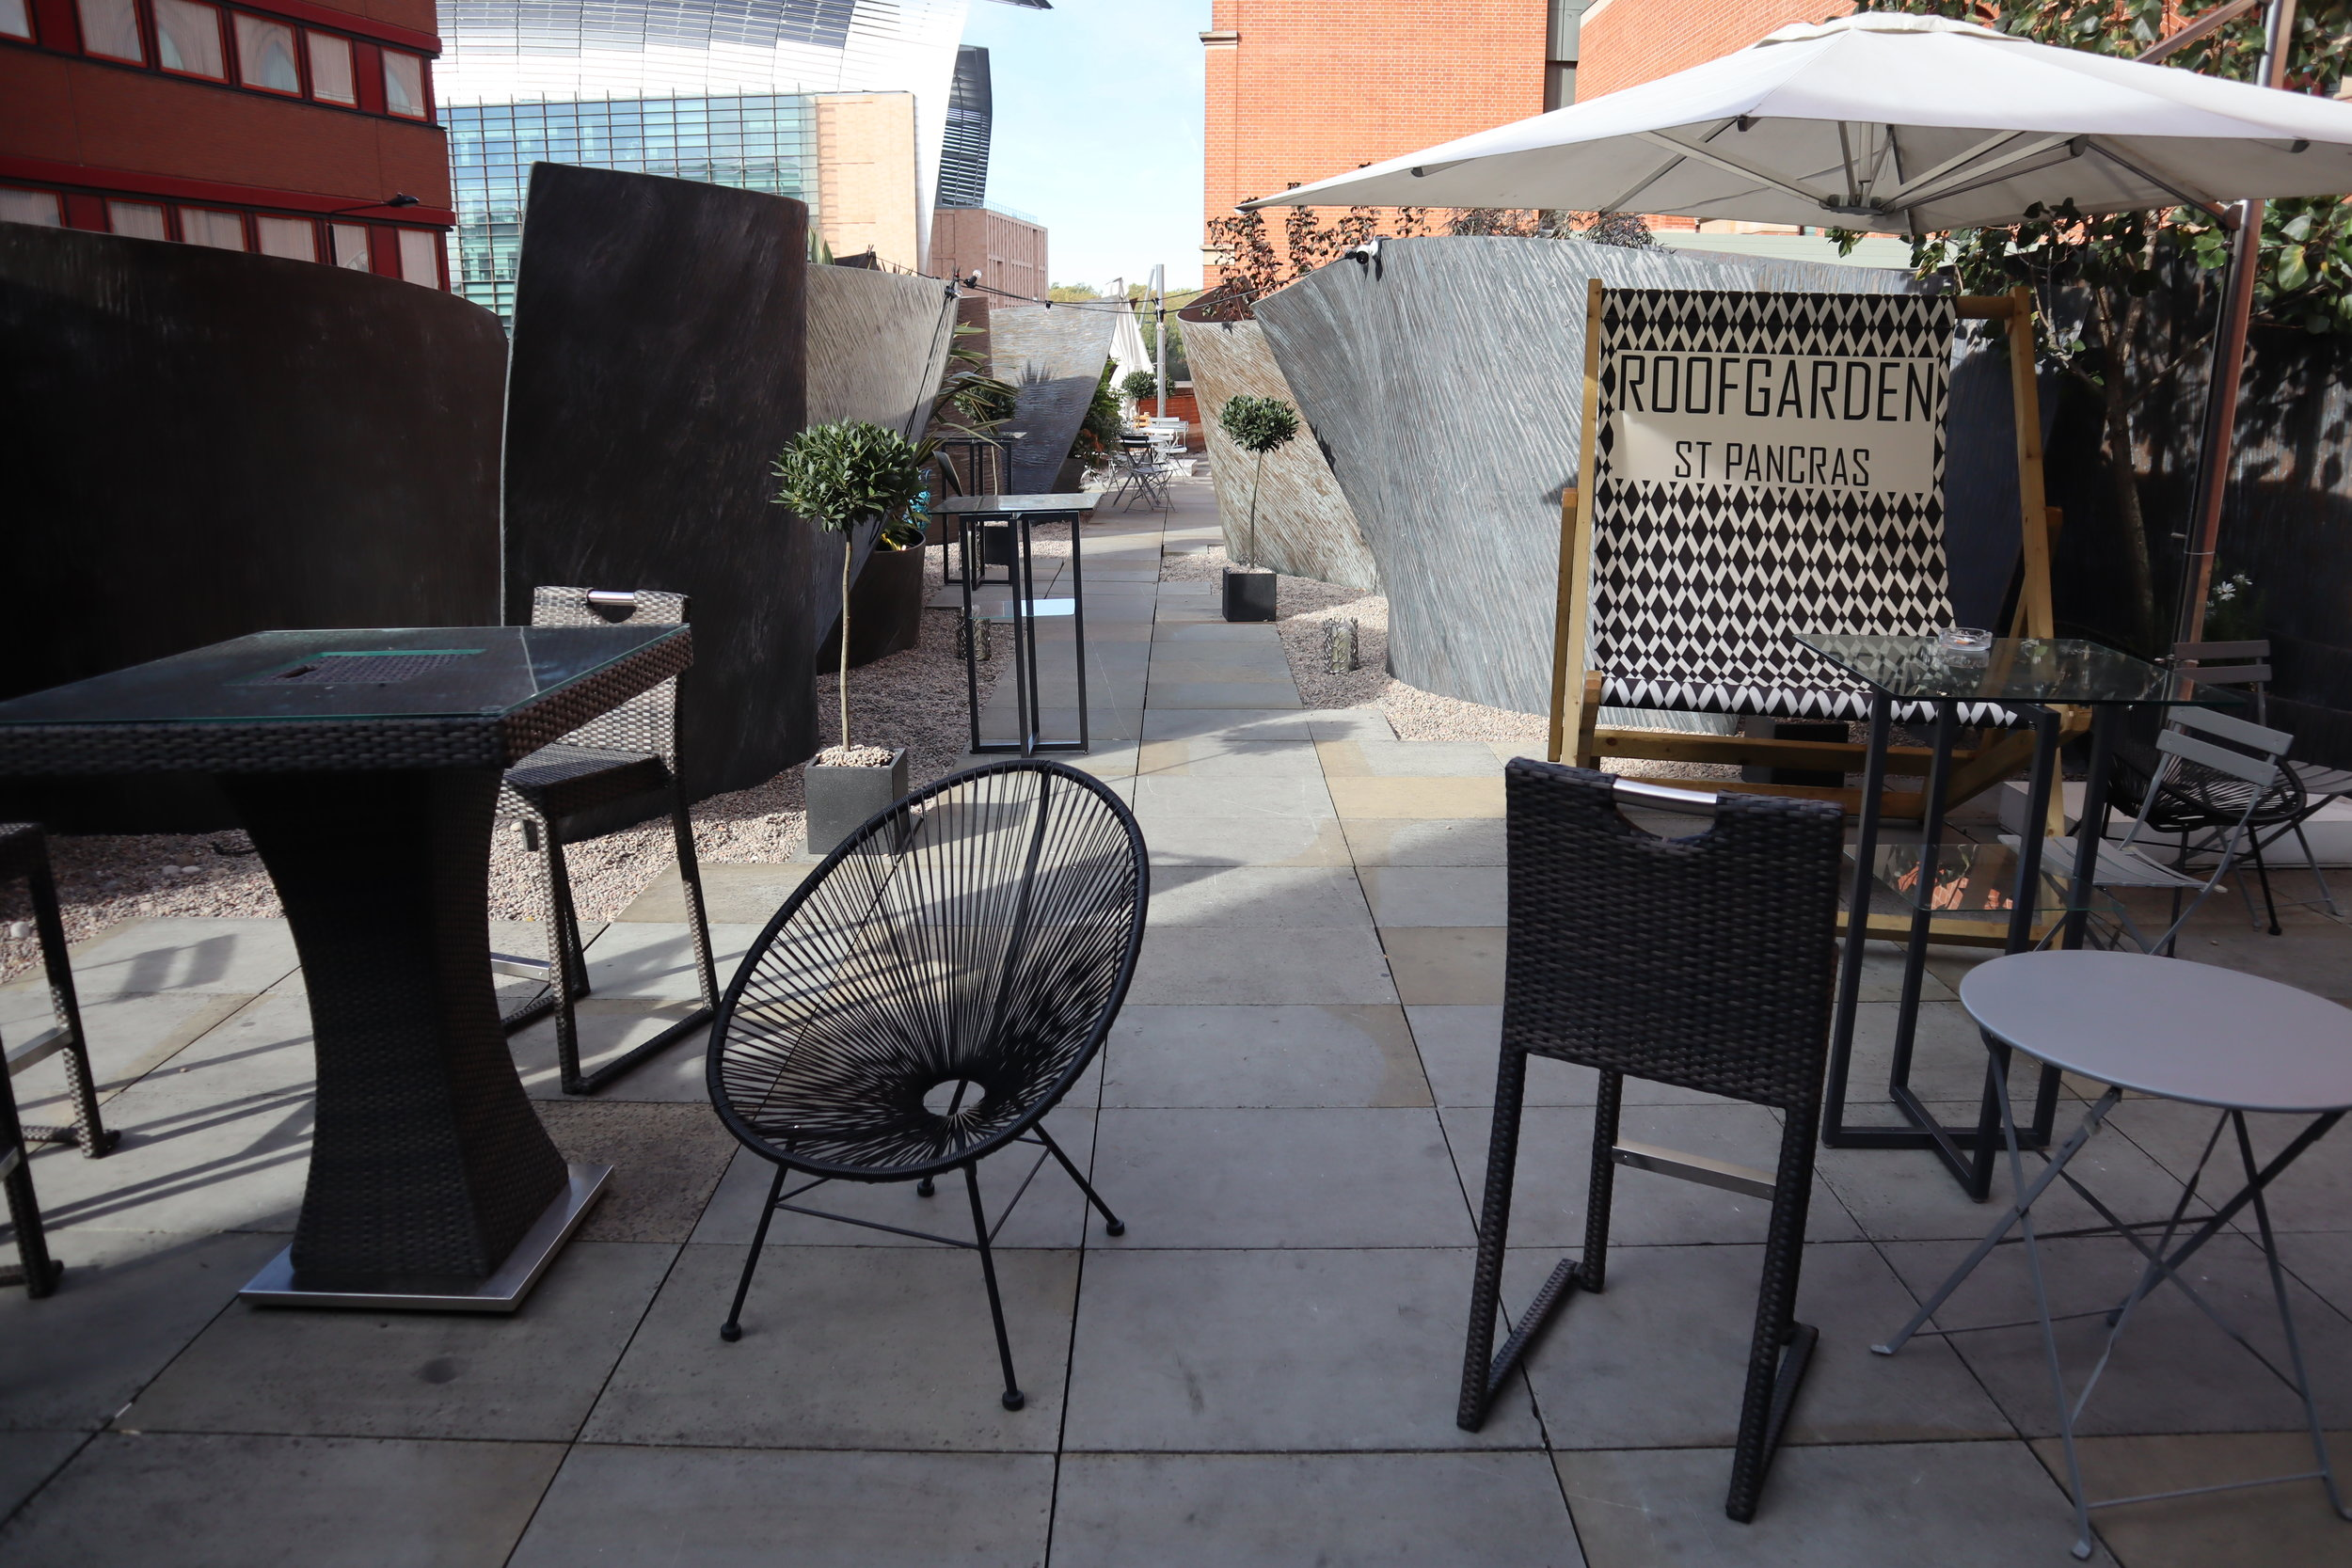 St. Pancras Renaissance Hotel London – Outdoor patio